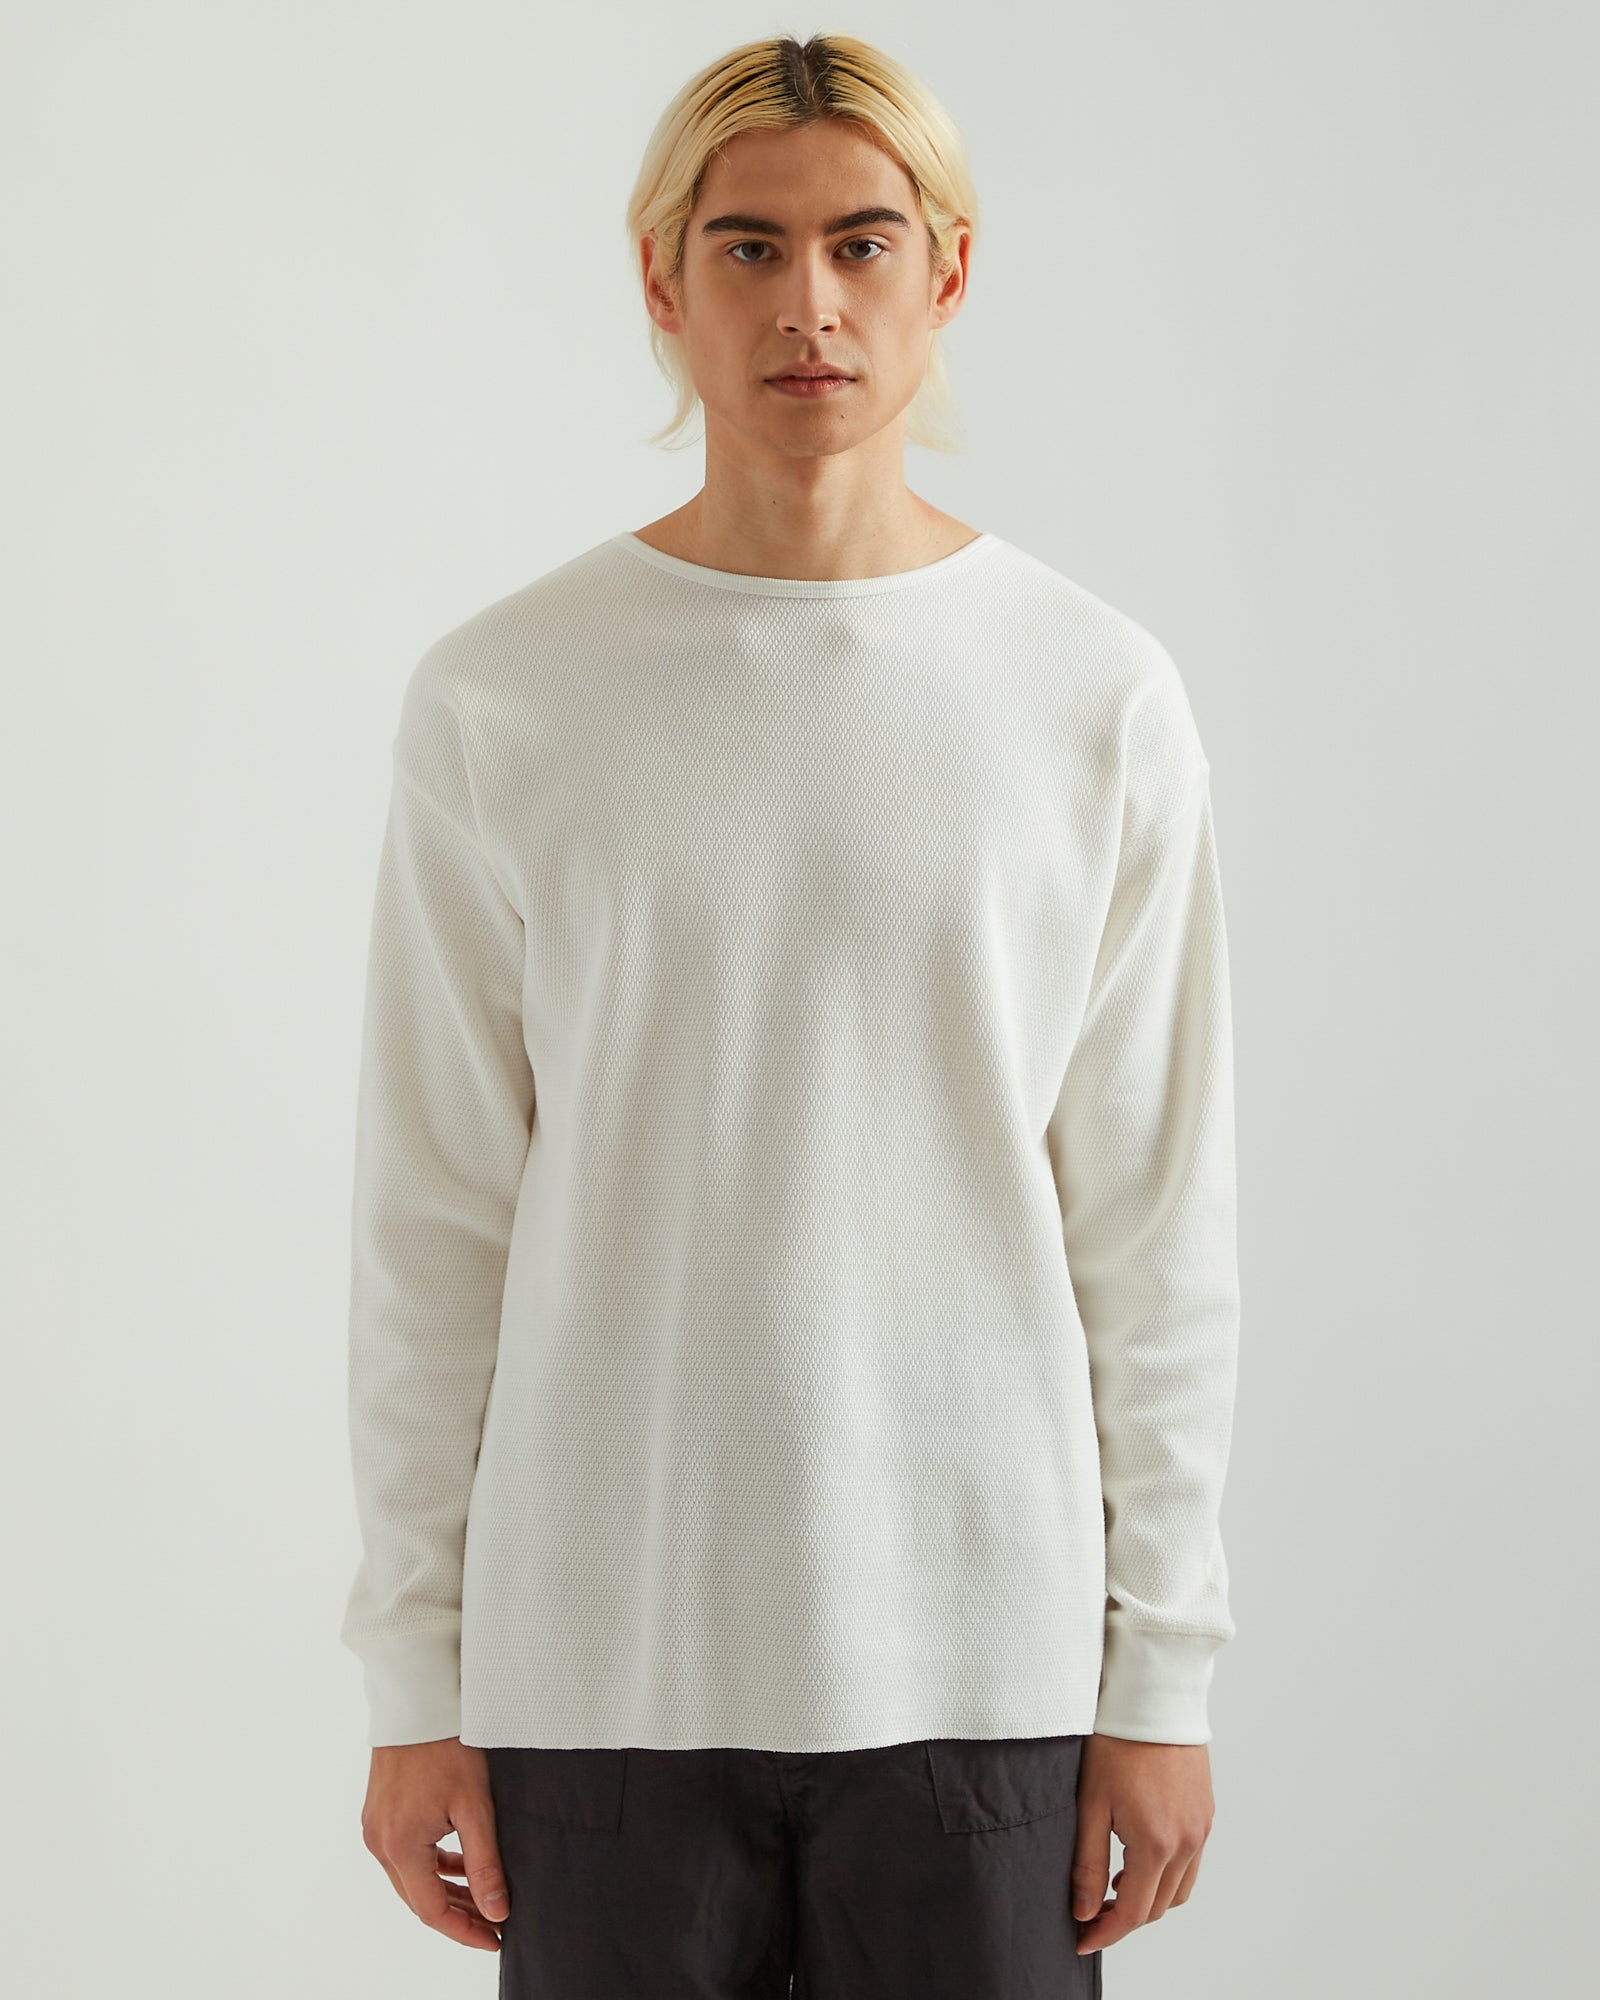 Thermal Long Sleeve in White